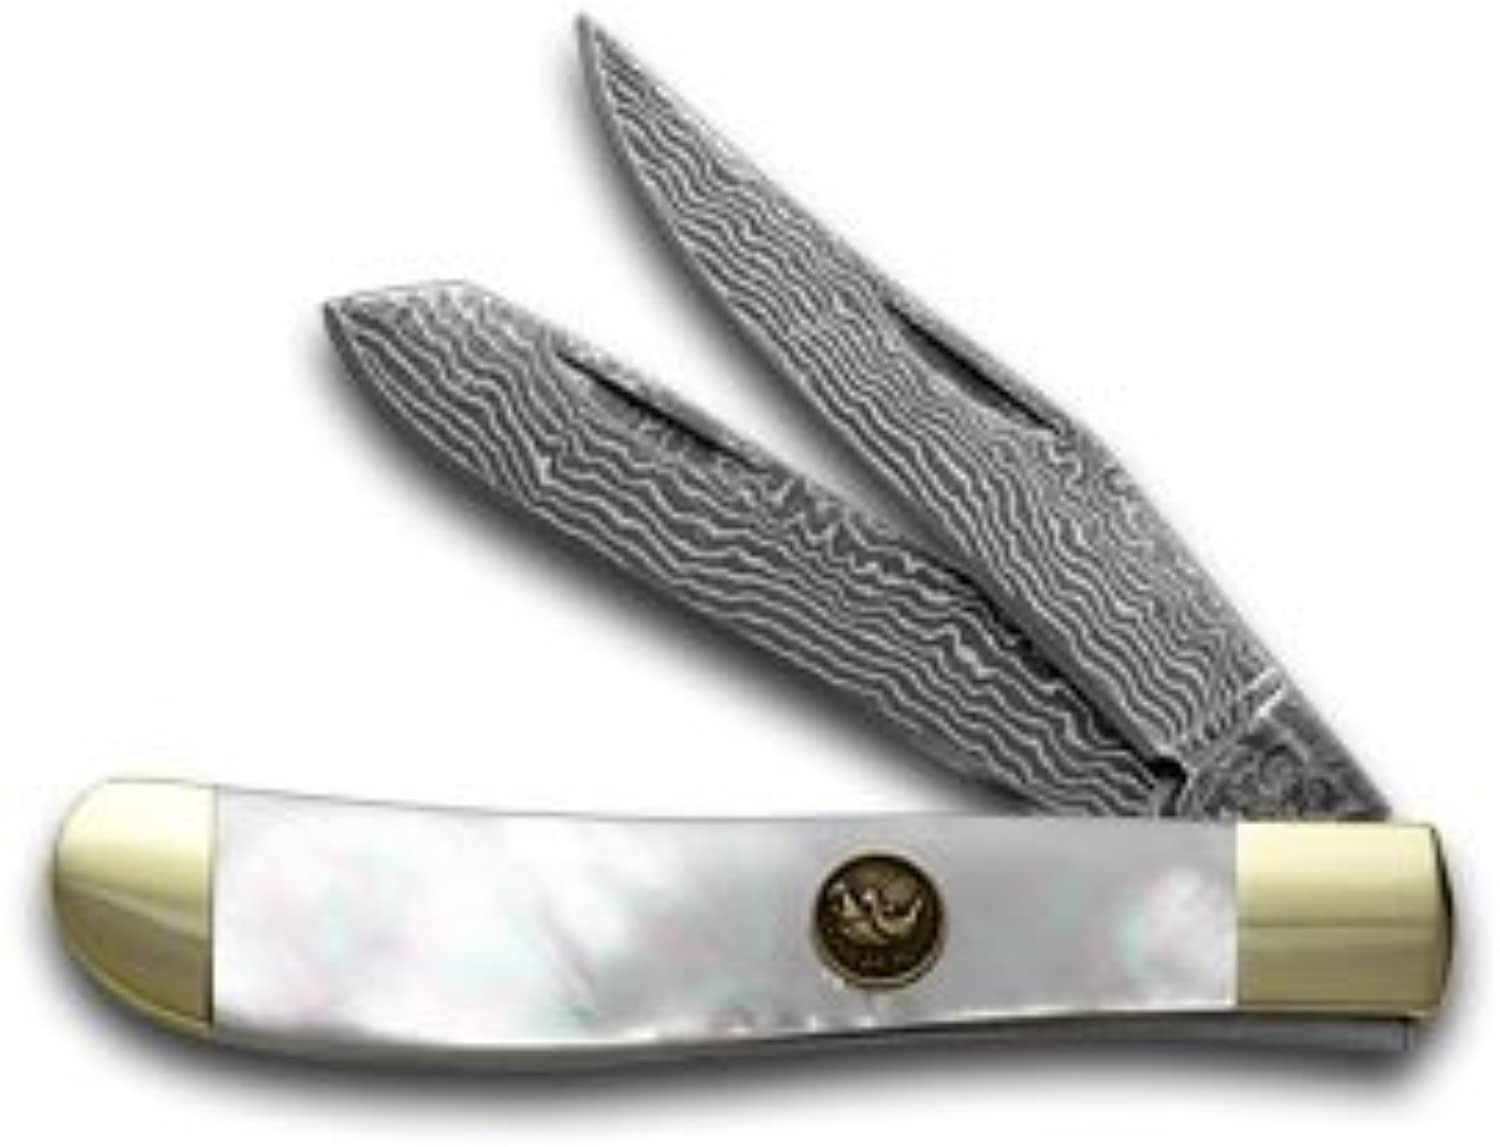 Hen and Rooster Damascus Genuine Mother of Pearl Mini Trapper Pocket Knife Knives